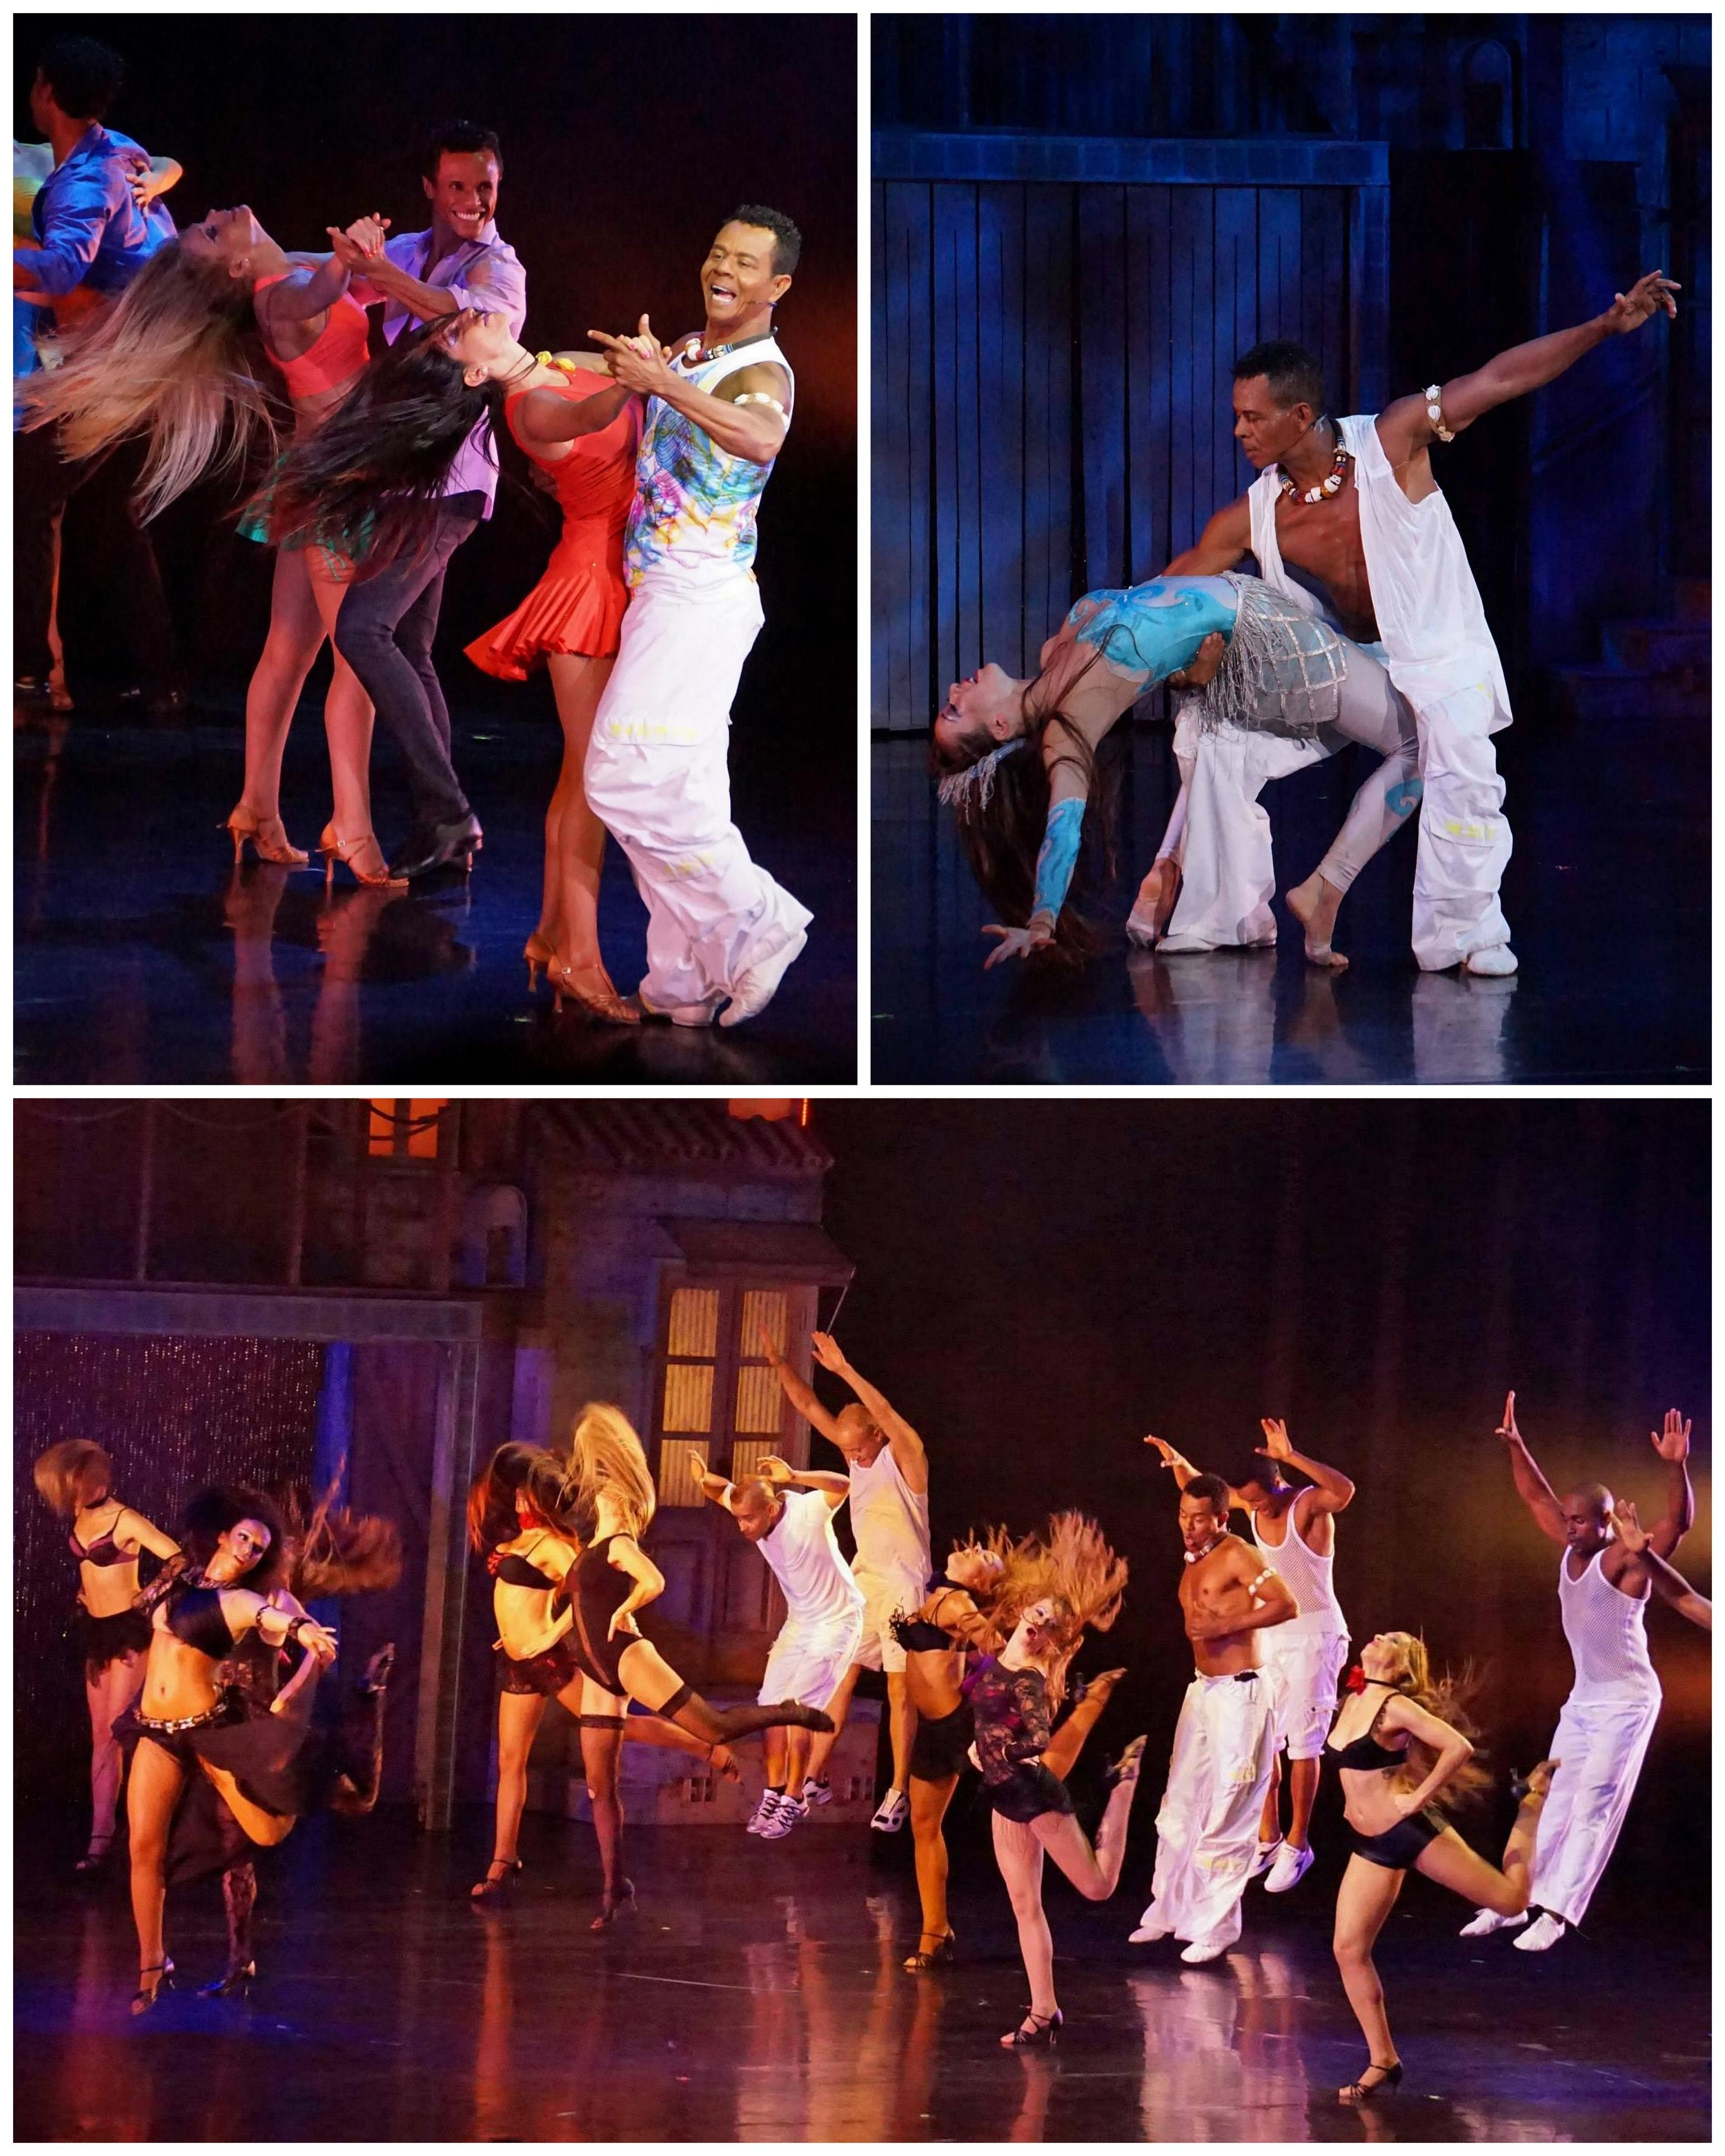 Moments from the brazouka show! photos by Rachel Findlay Moreira.